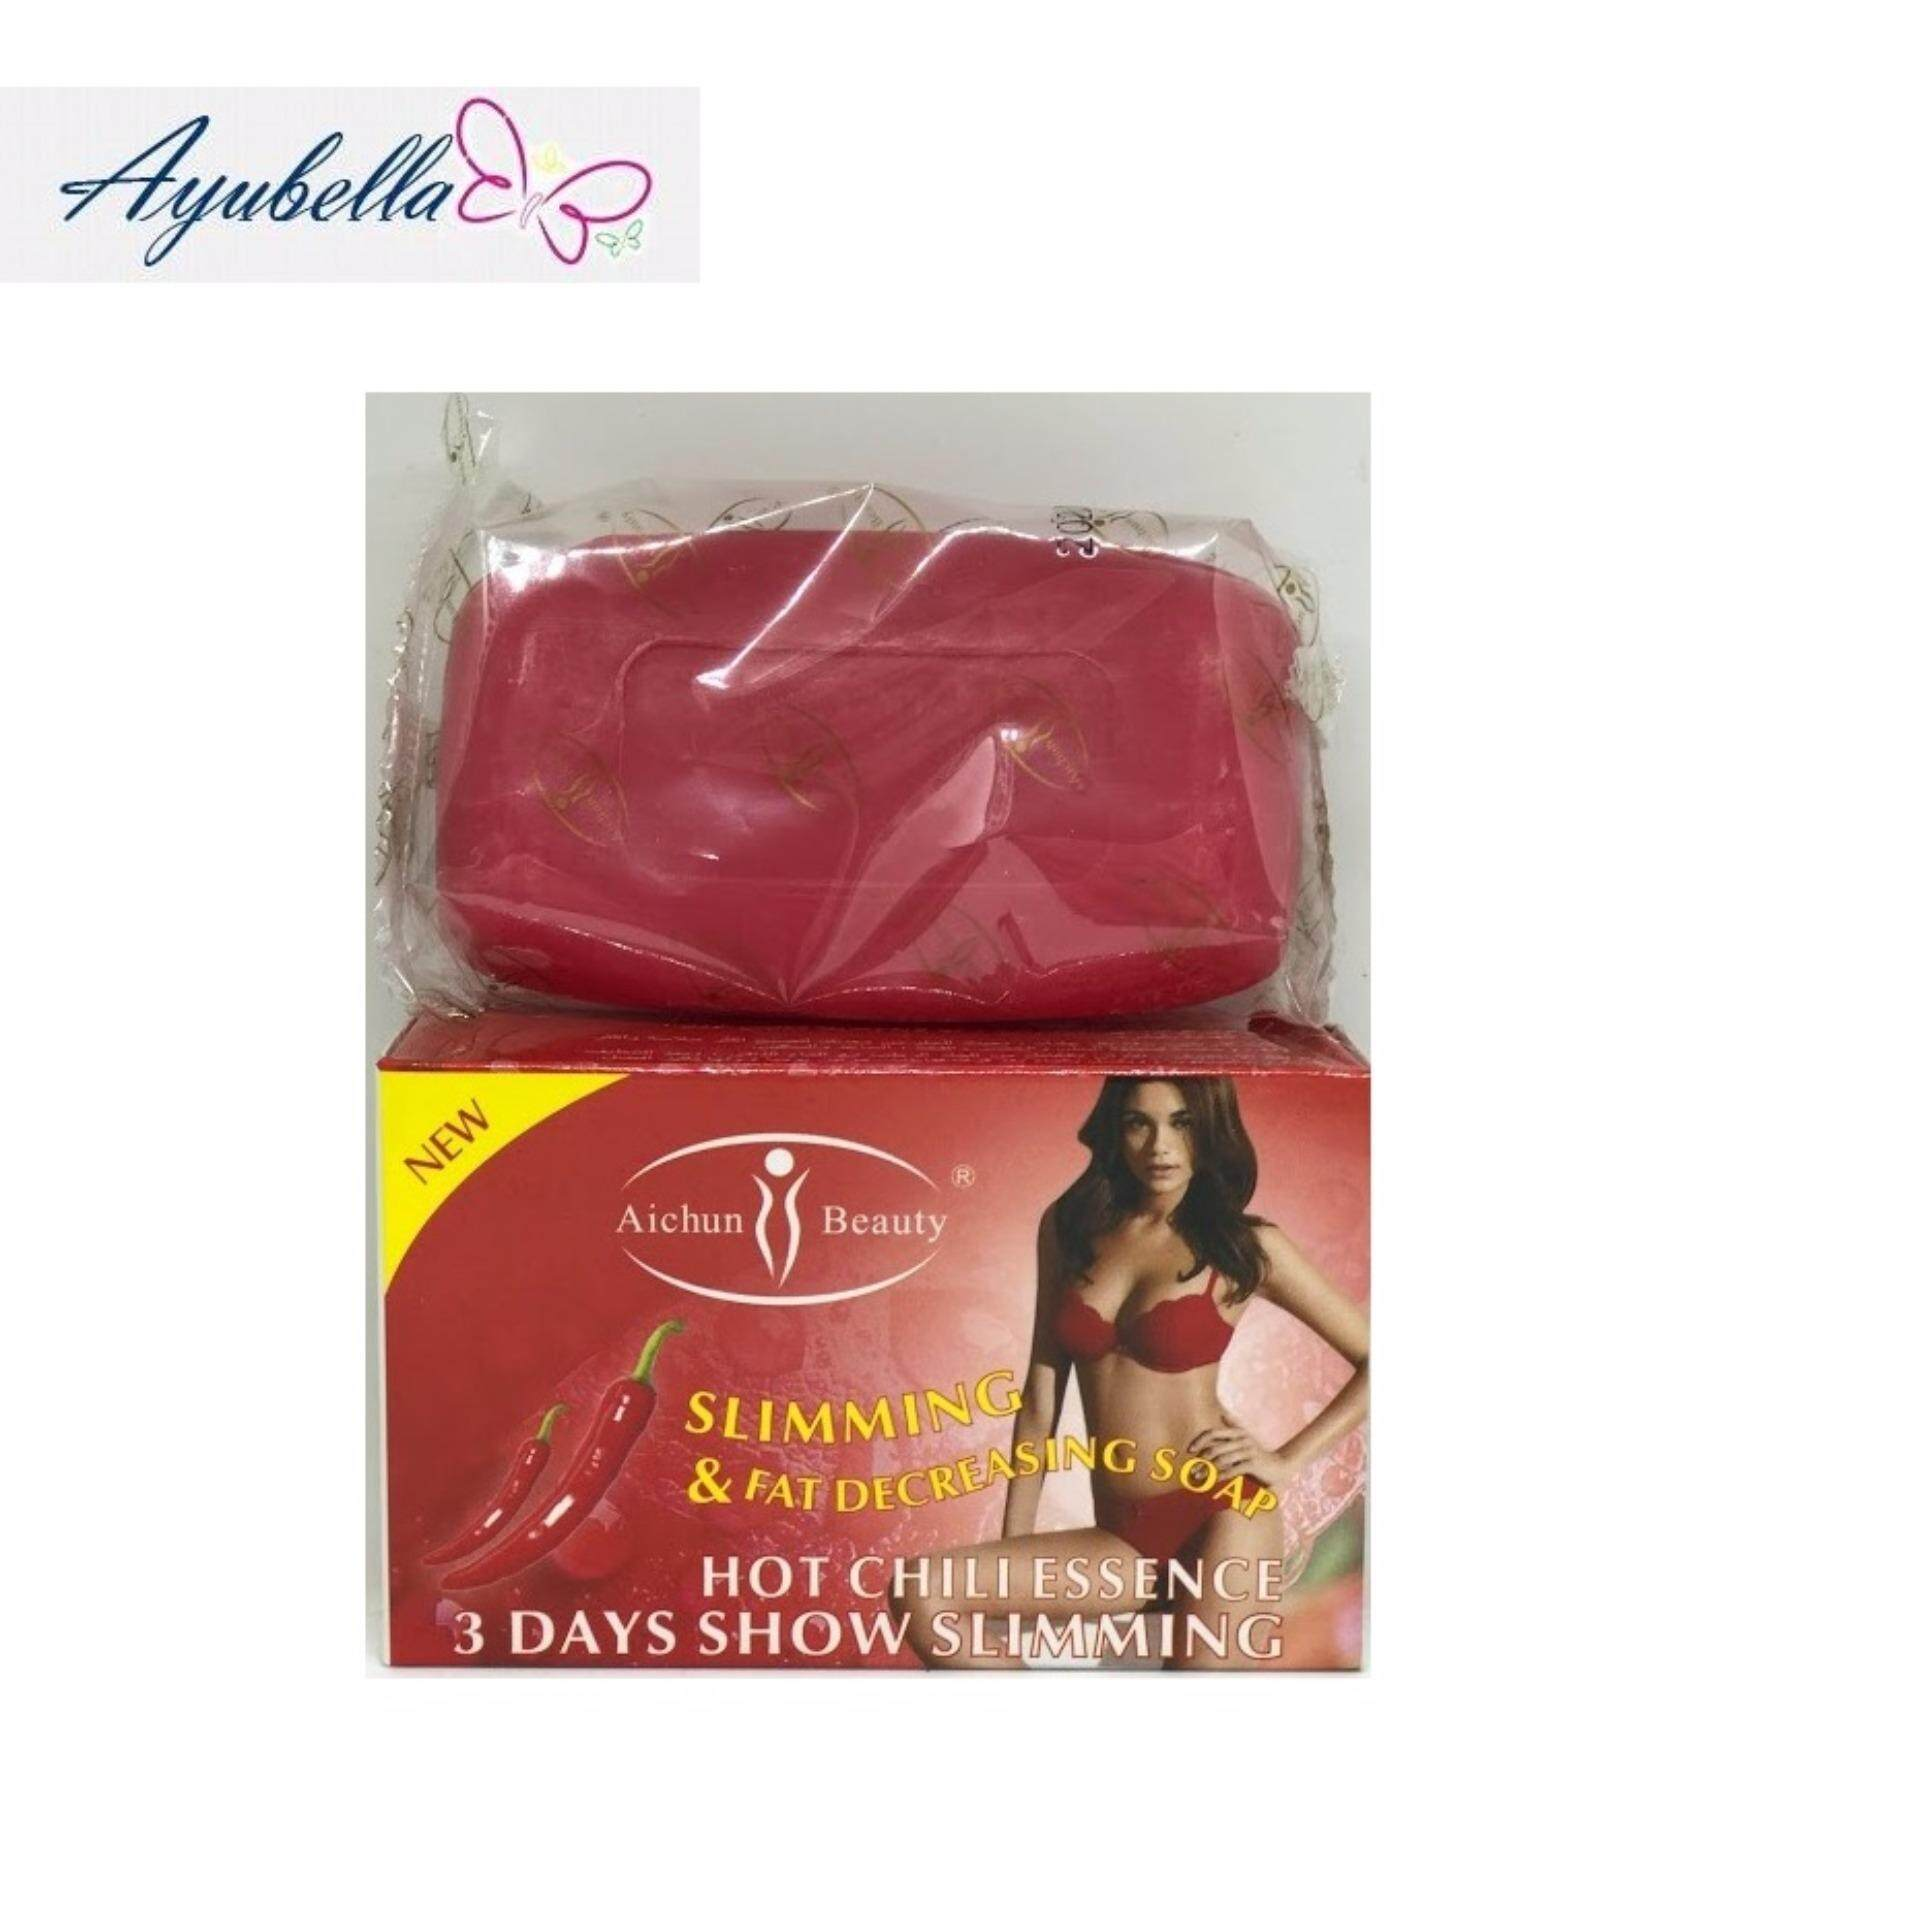 Aichun Beauty Slimming Soap x 2 (Chilli and Ginger)